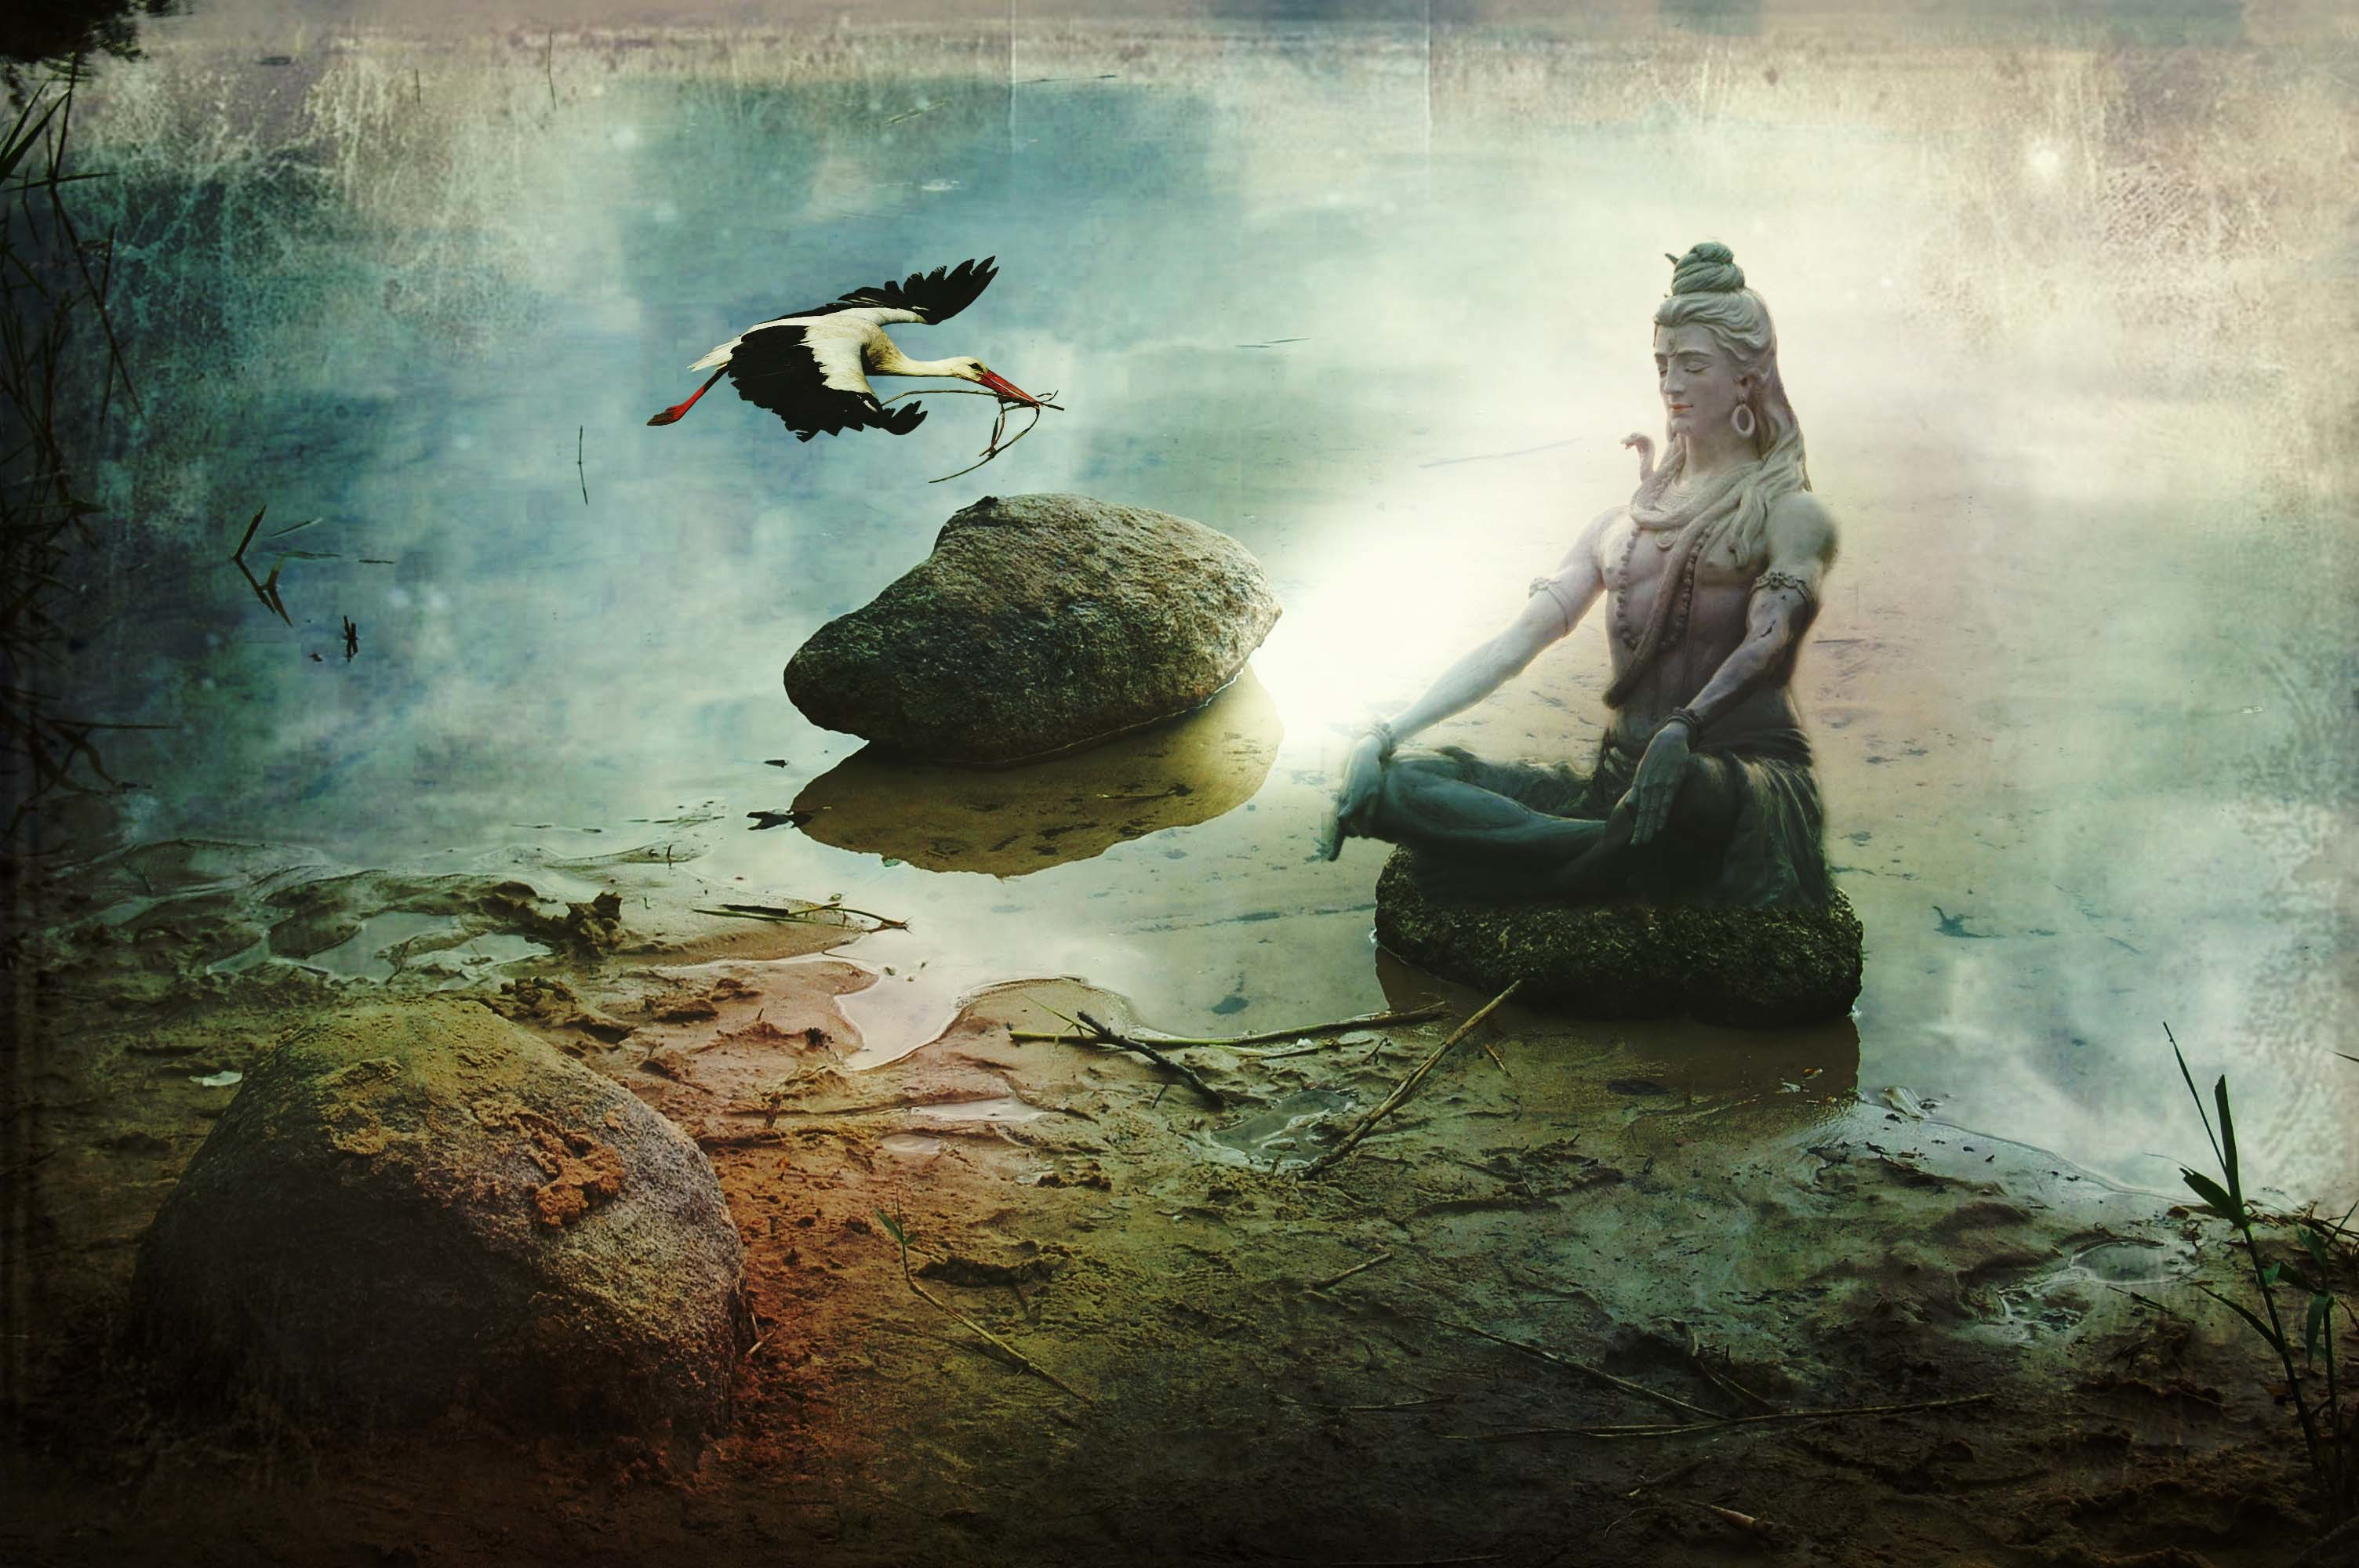 Lord Shiva Wallpapers Picture with High Definition Wallpaper Resolution